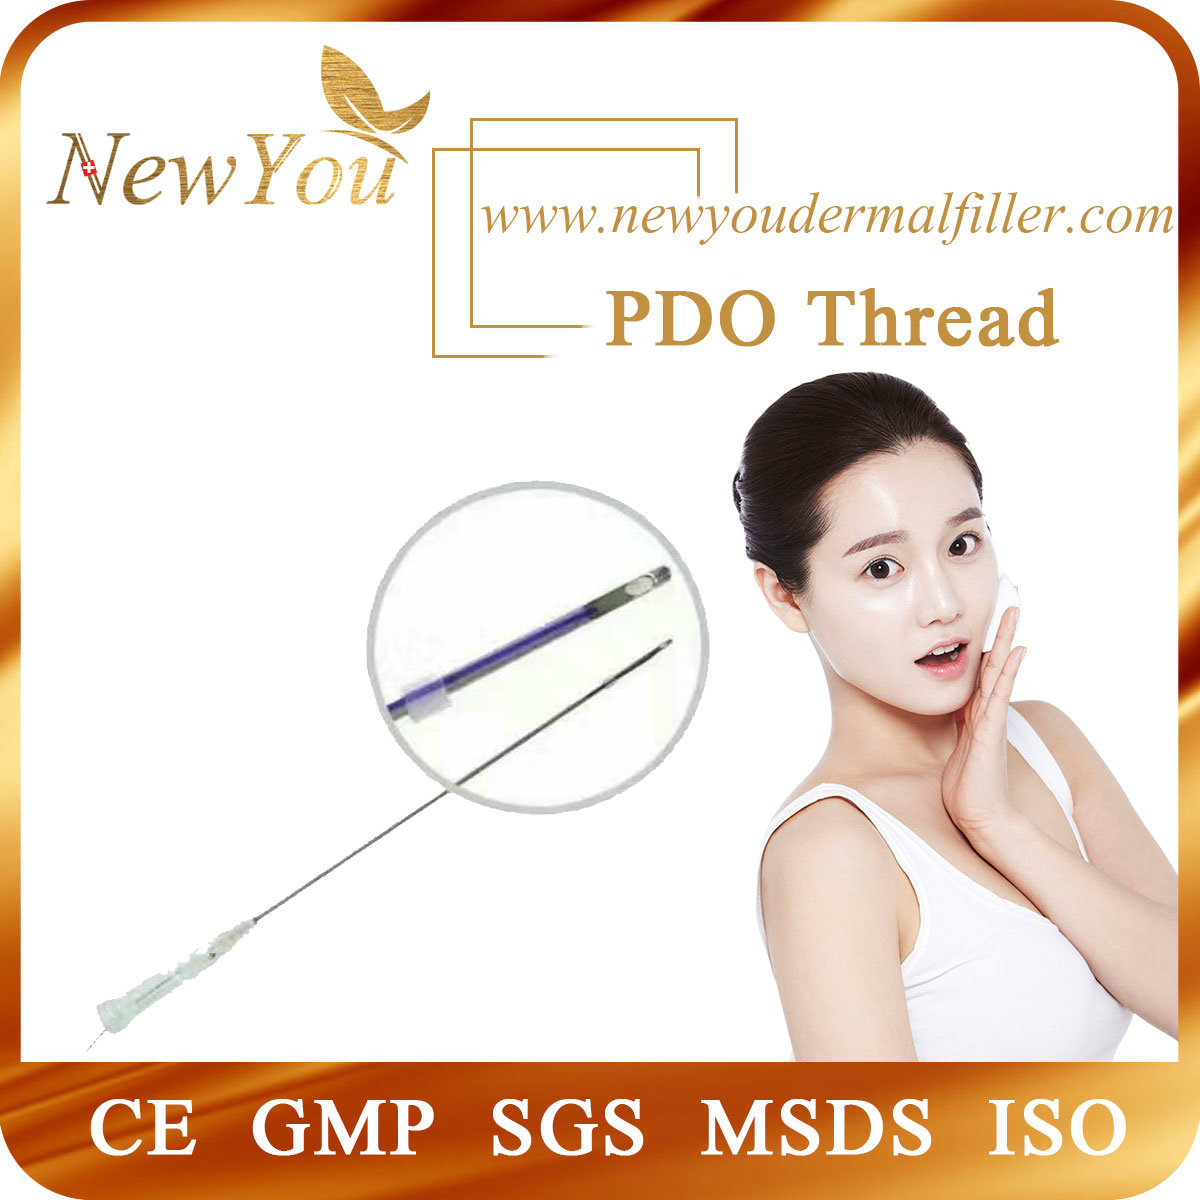 Polydioxanone Suture Monofilament Pdo Thread Needle